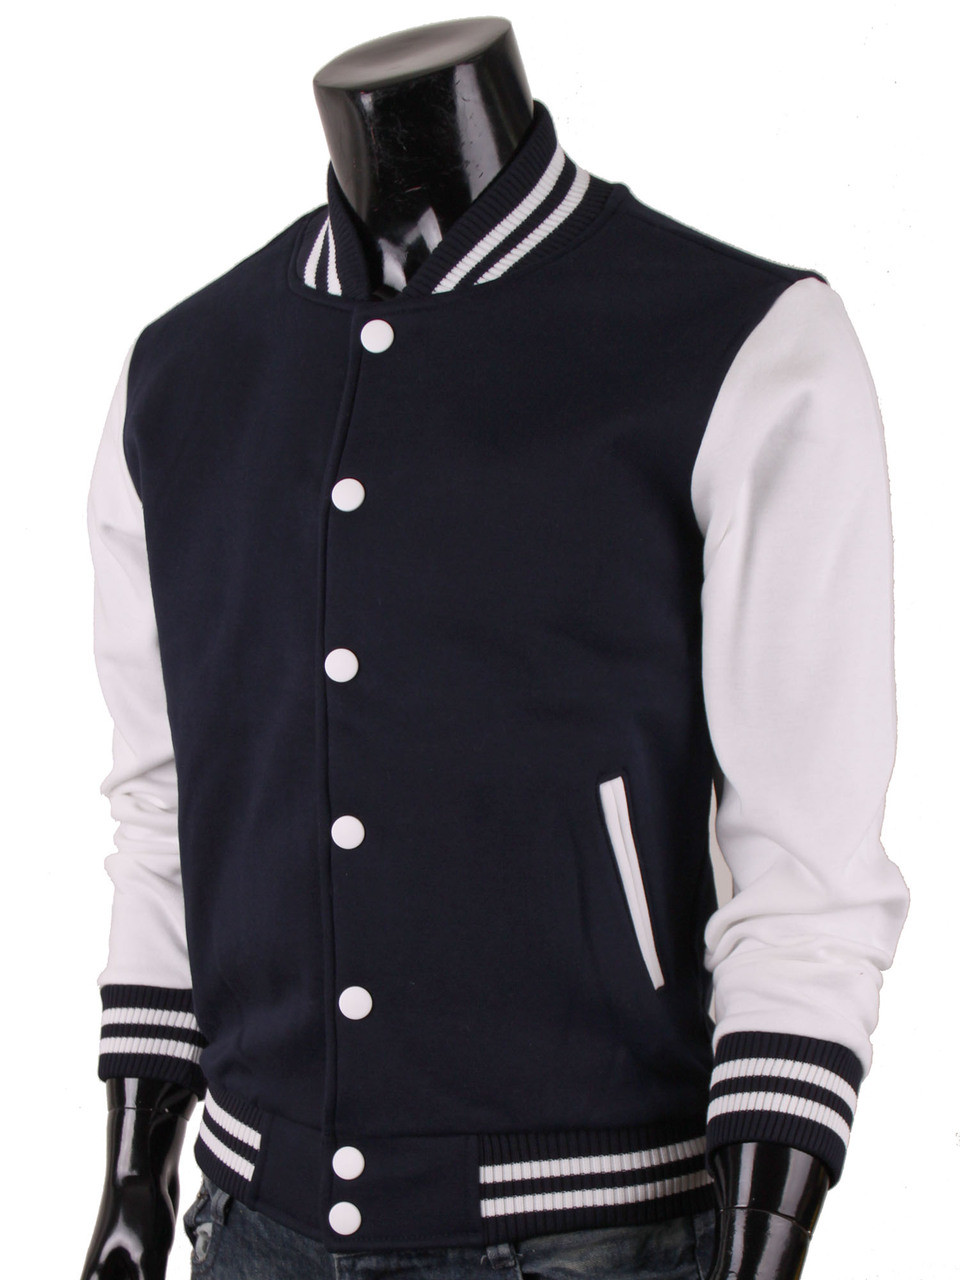 b3a1003b7 Bcpolo Baseball Jacket Cotton Varsity Jacket Sweatshirt Letterman Jacket